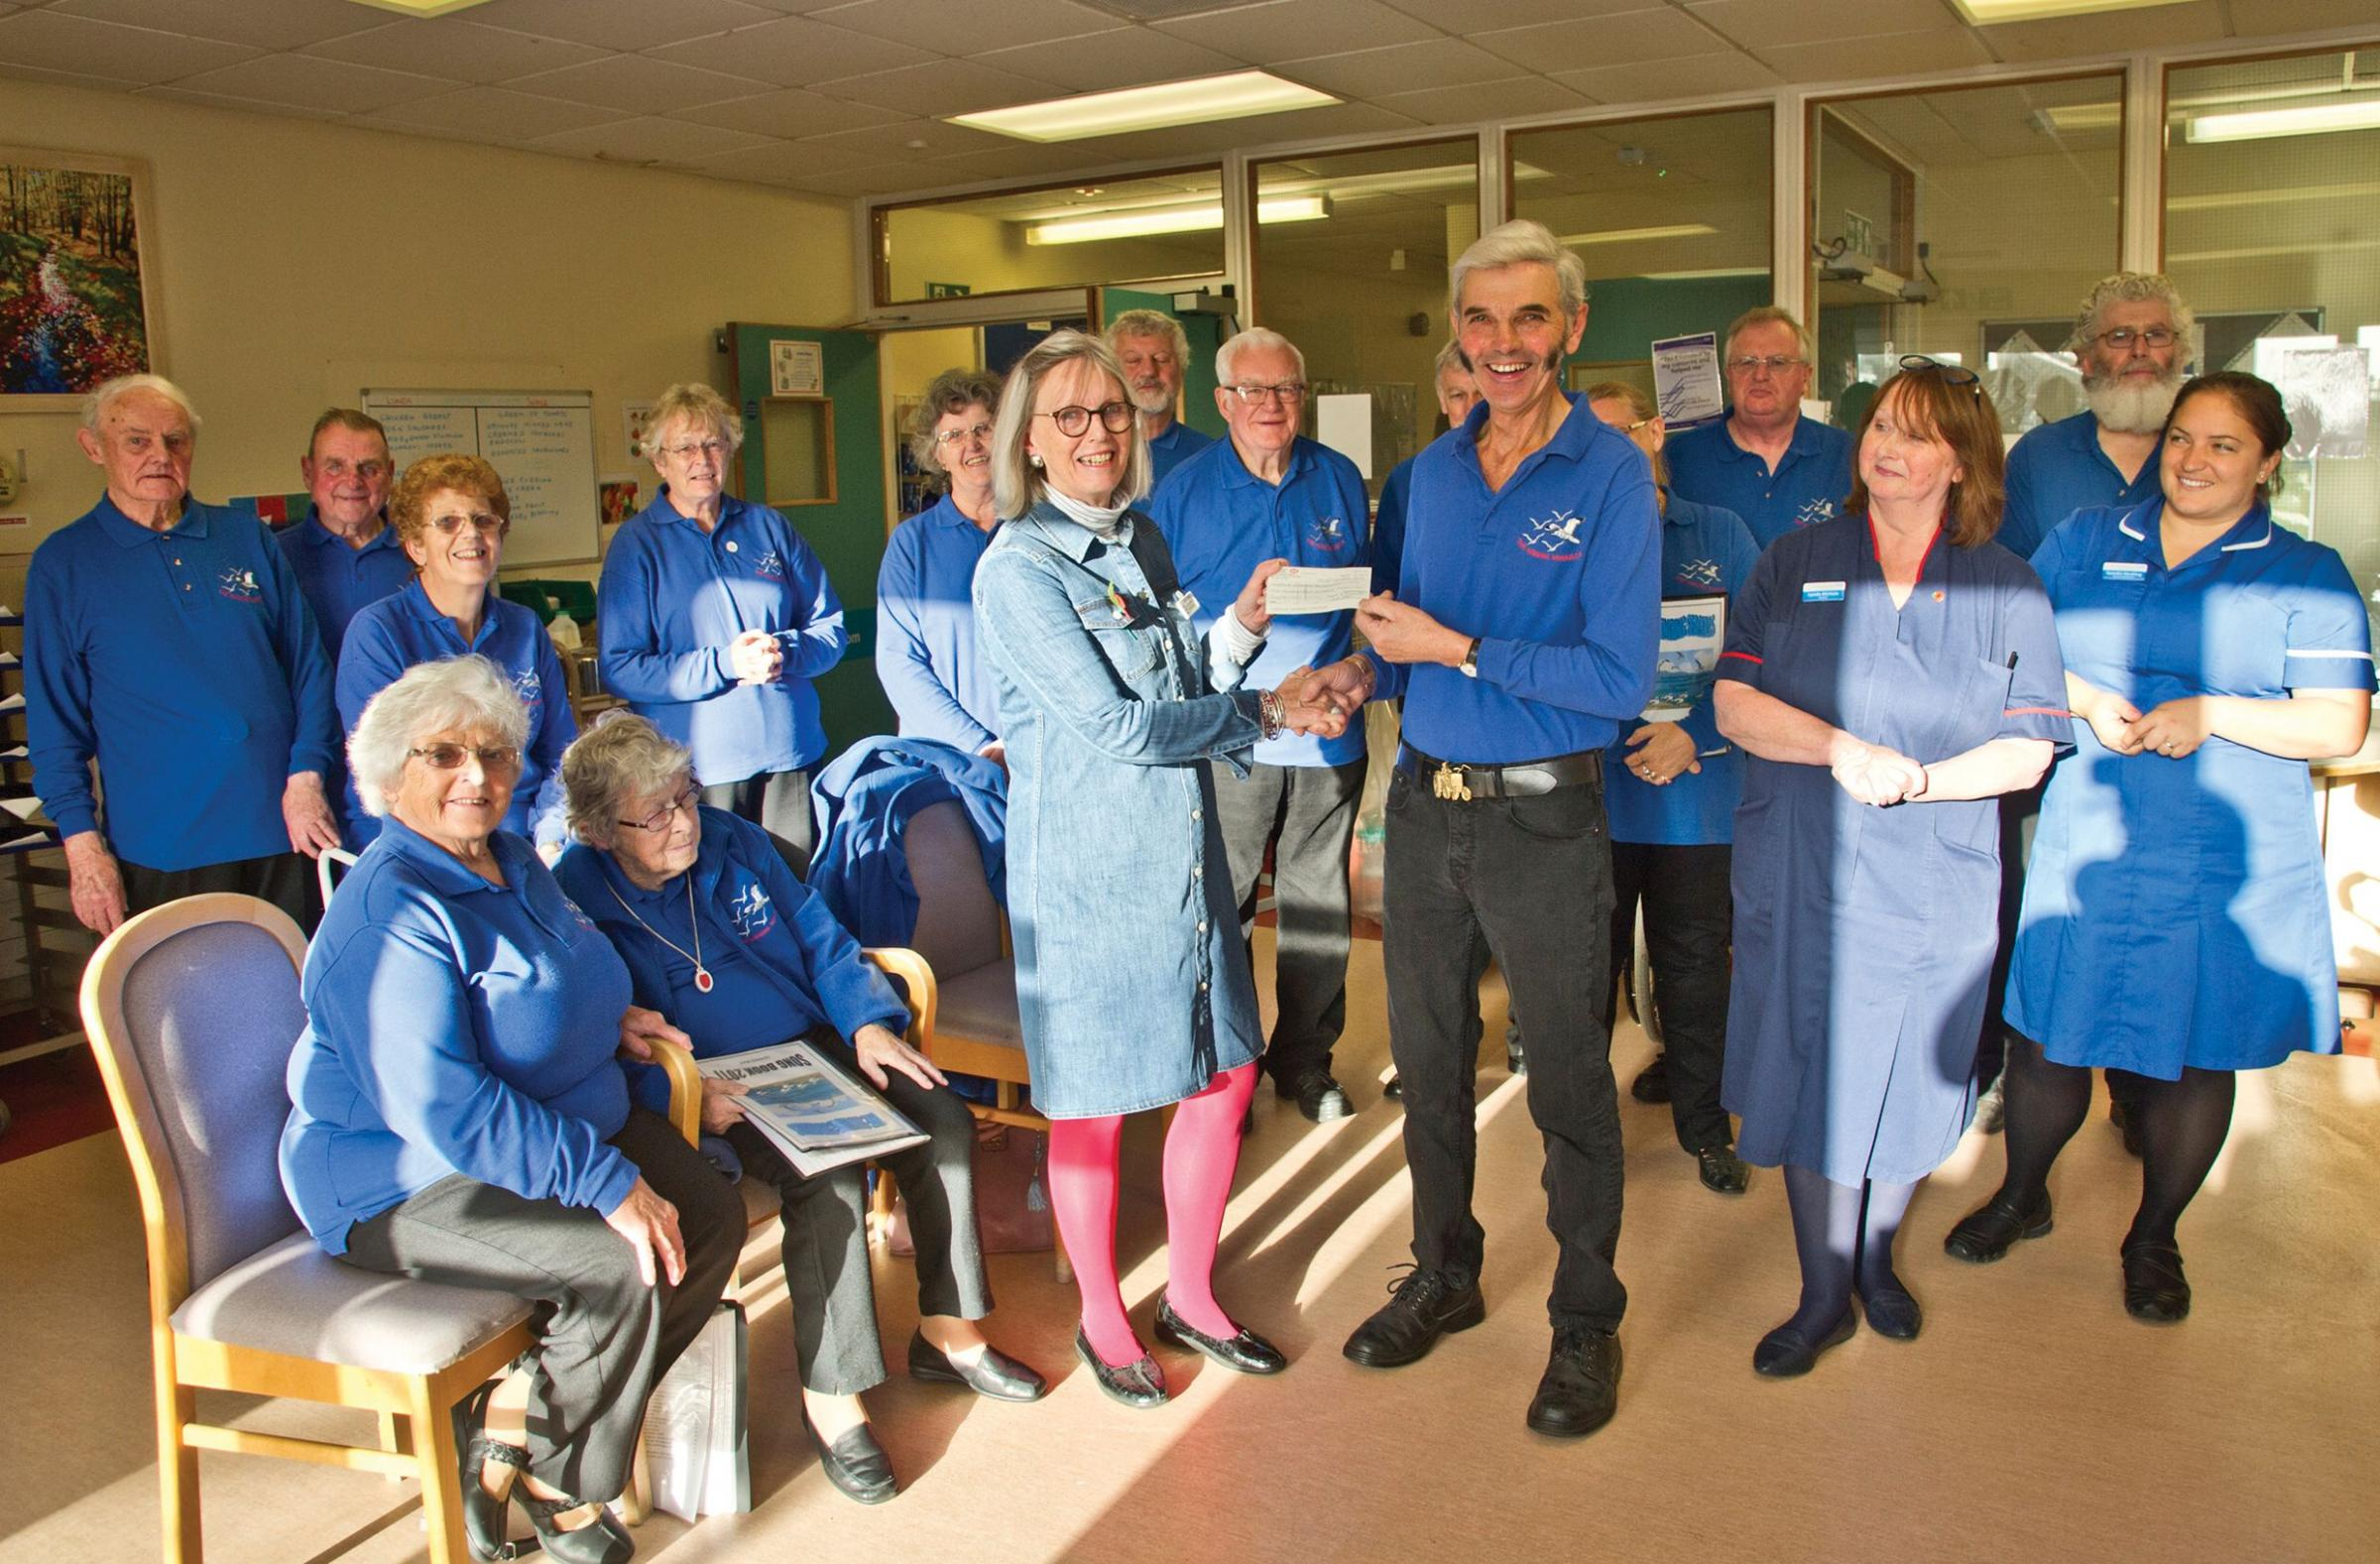 Cecil and Deborah Bennetts, on behalf of the Singing Seagulls, present a cheque for £2,500 to Jo Coward of the League of Friends of Helston Community Hospital. Photo: John Martin